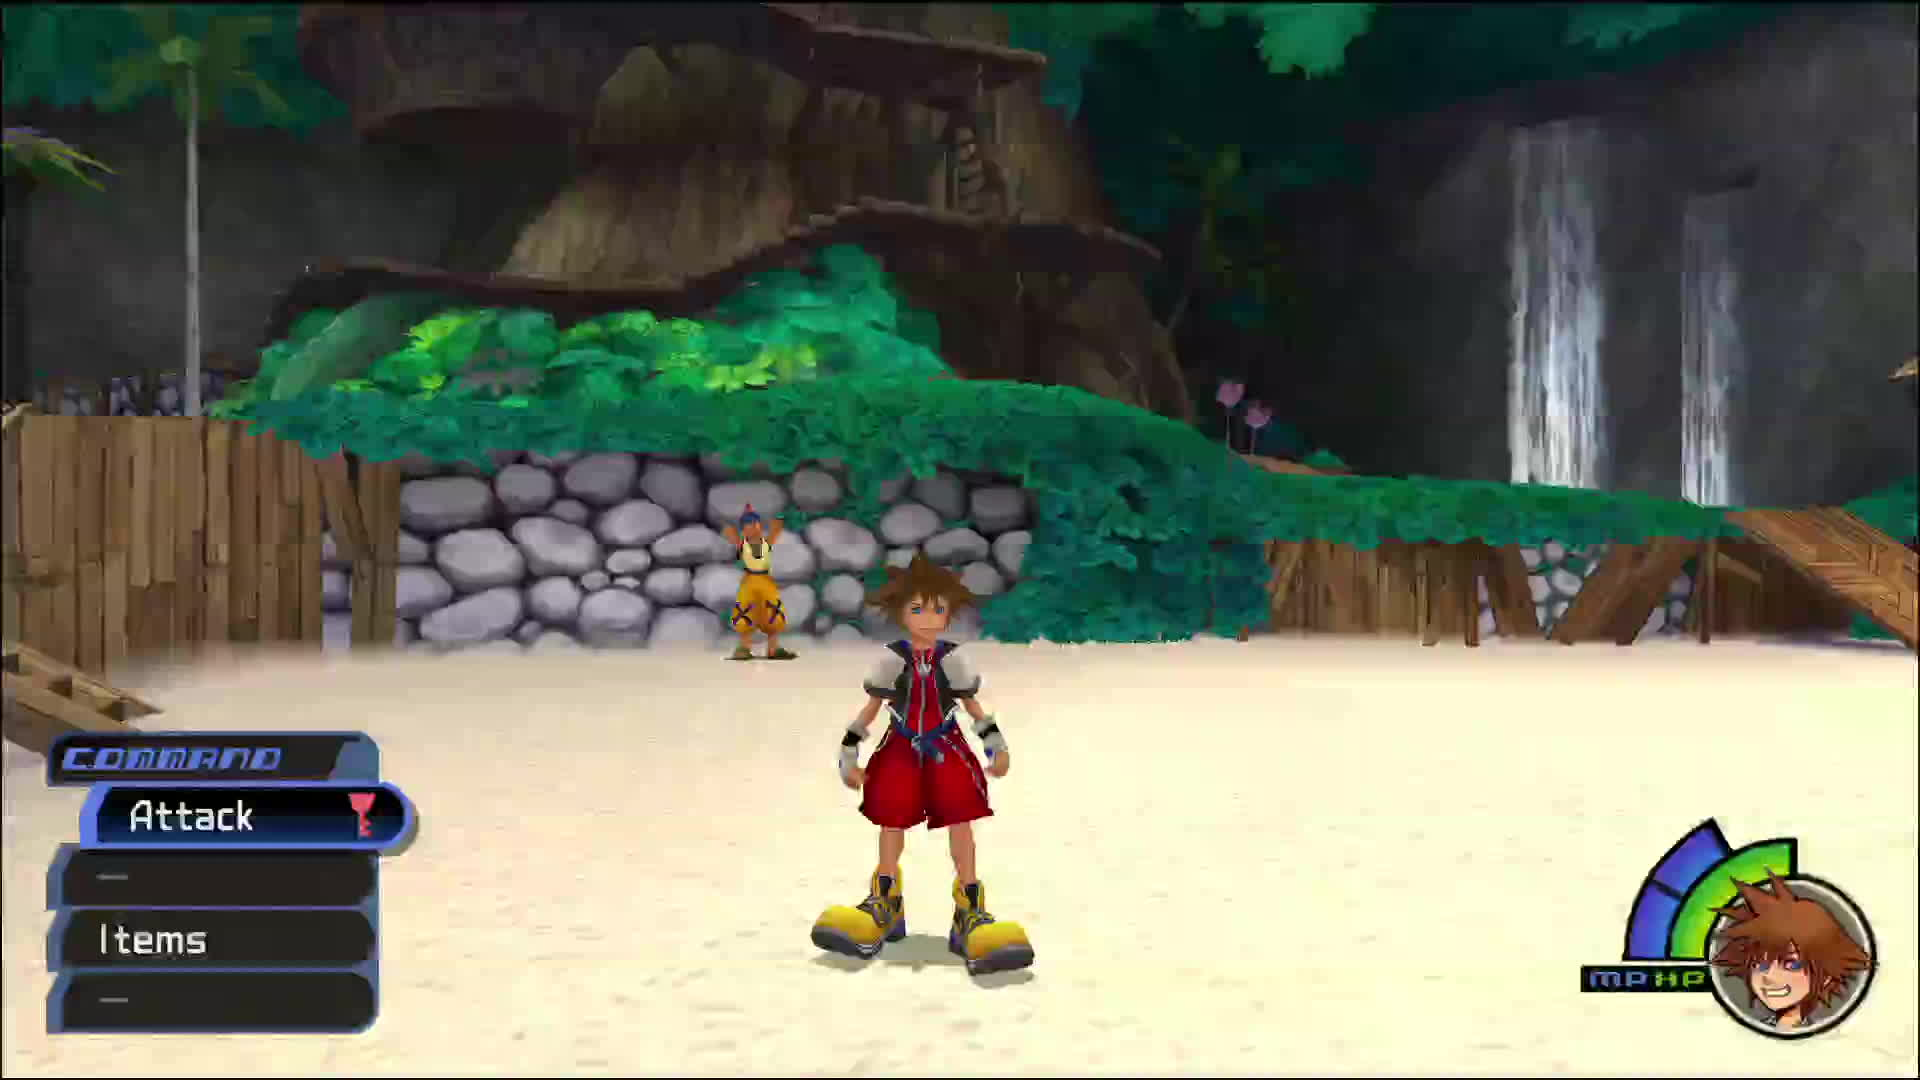 kingdomhearts, Here's some Kingdom Hearts at 60fps. Enjoy! GIFs